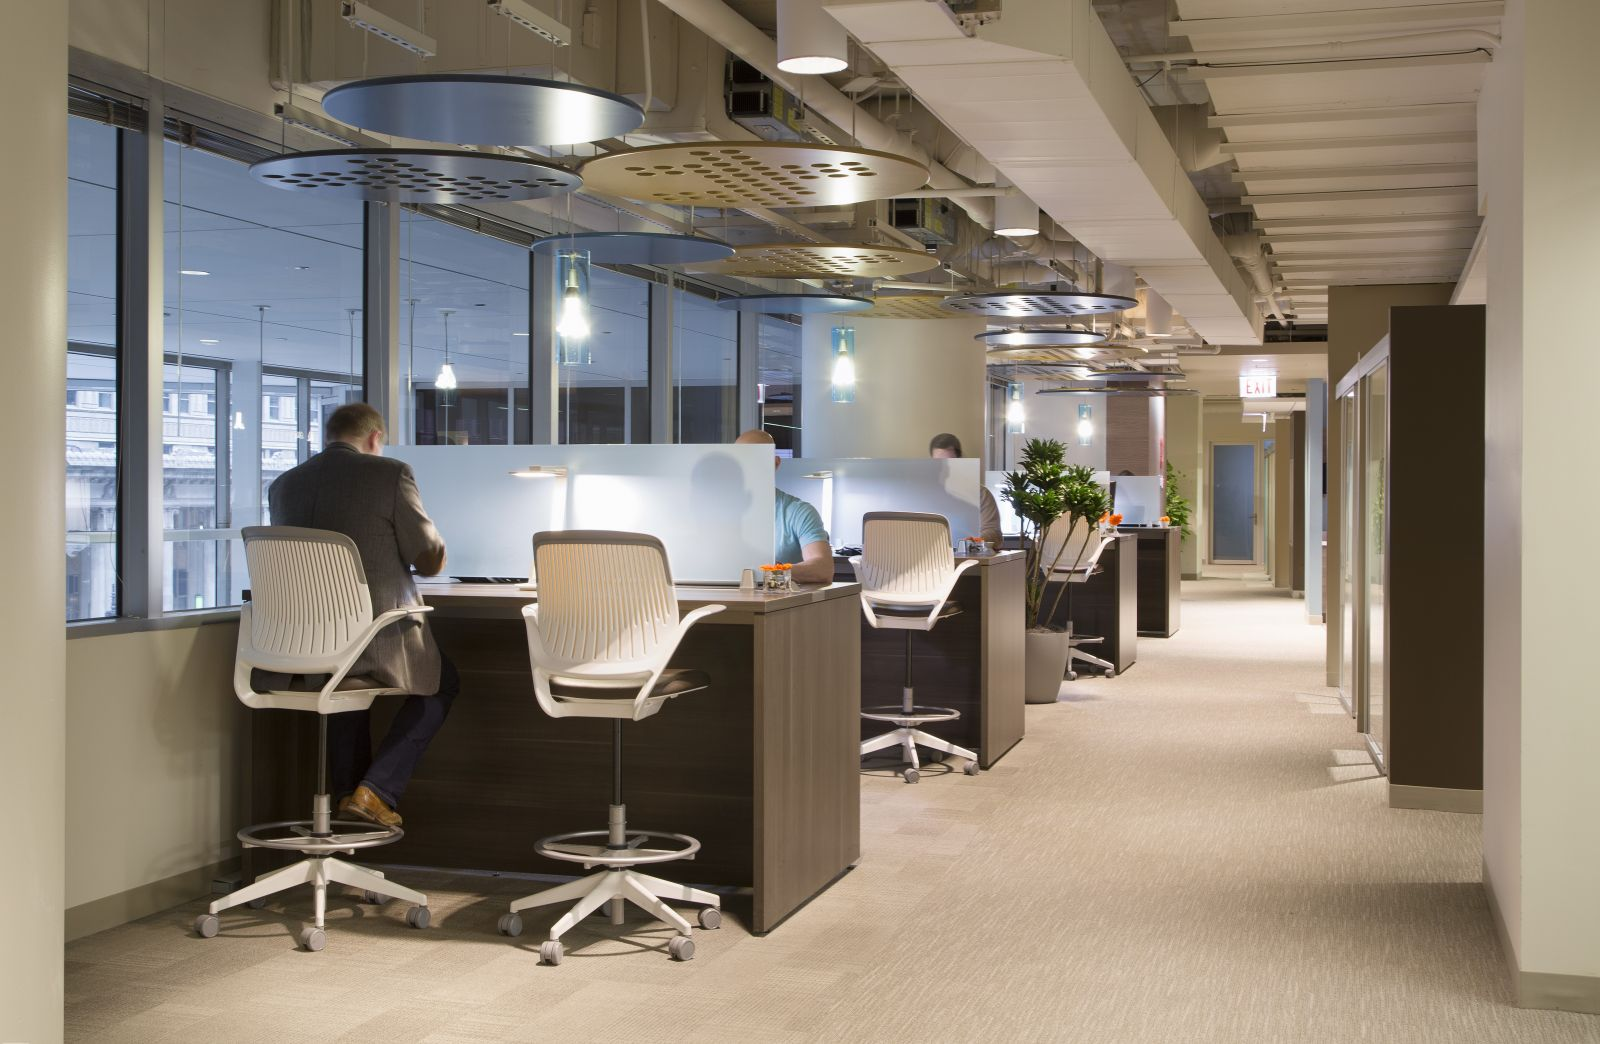 Serendipity Coworking Spaces in Chicago